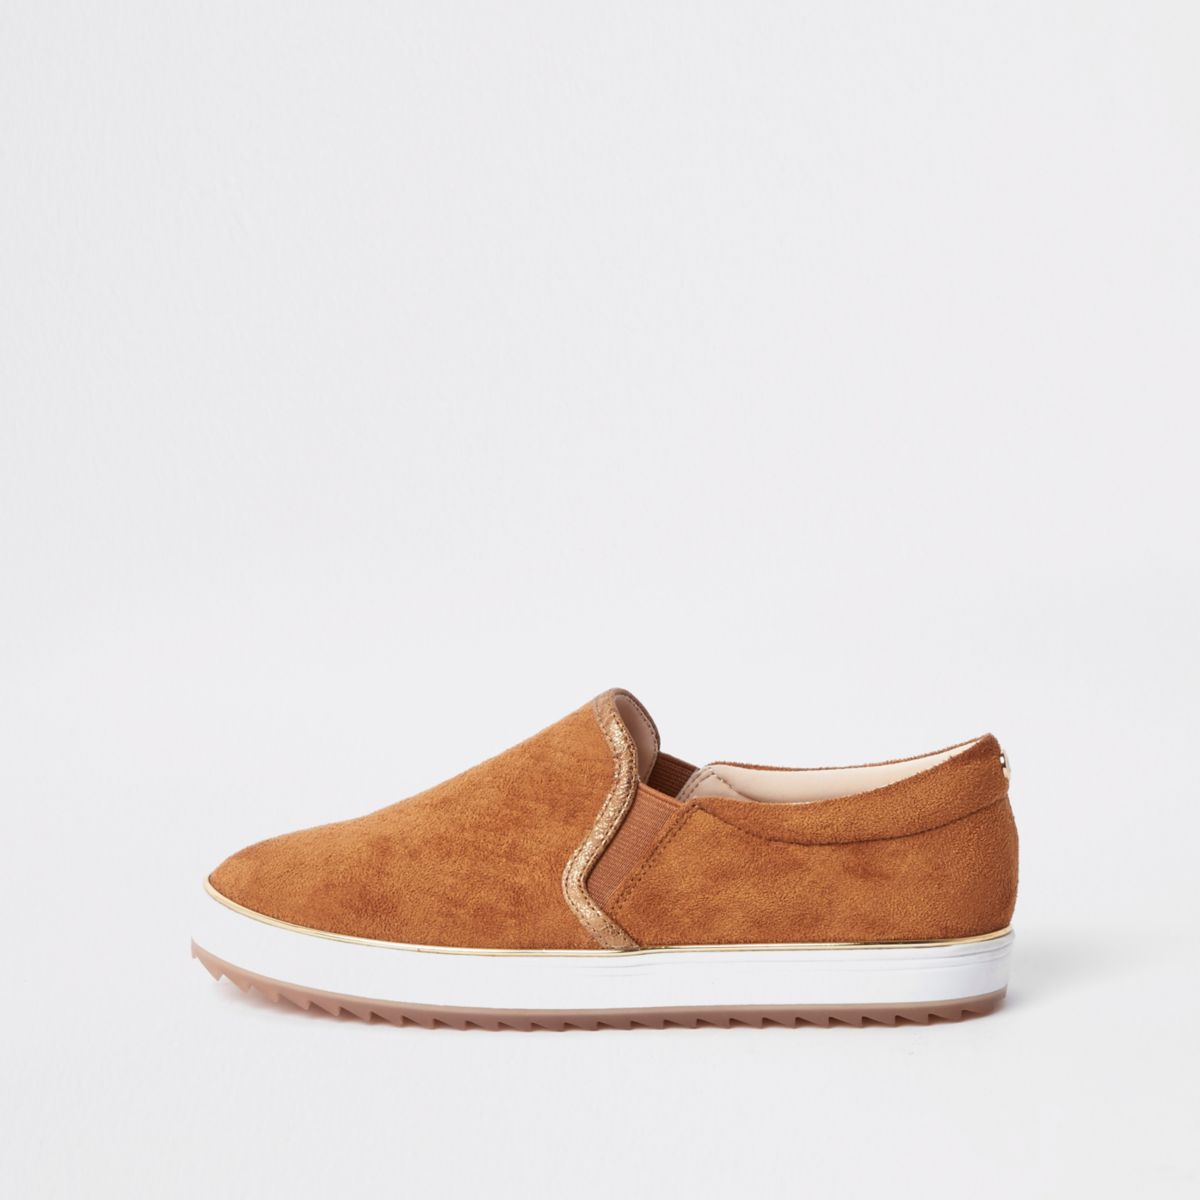 Light brown slip on plimsolls